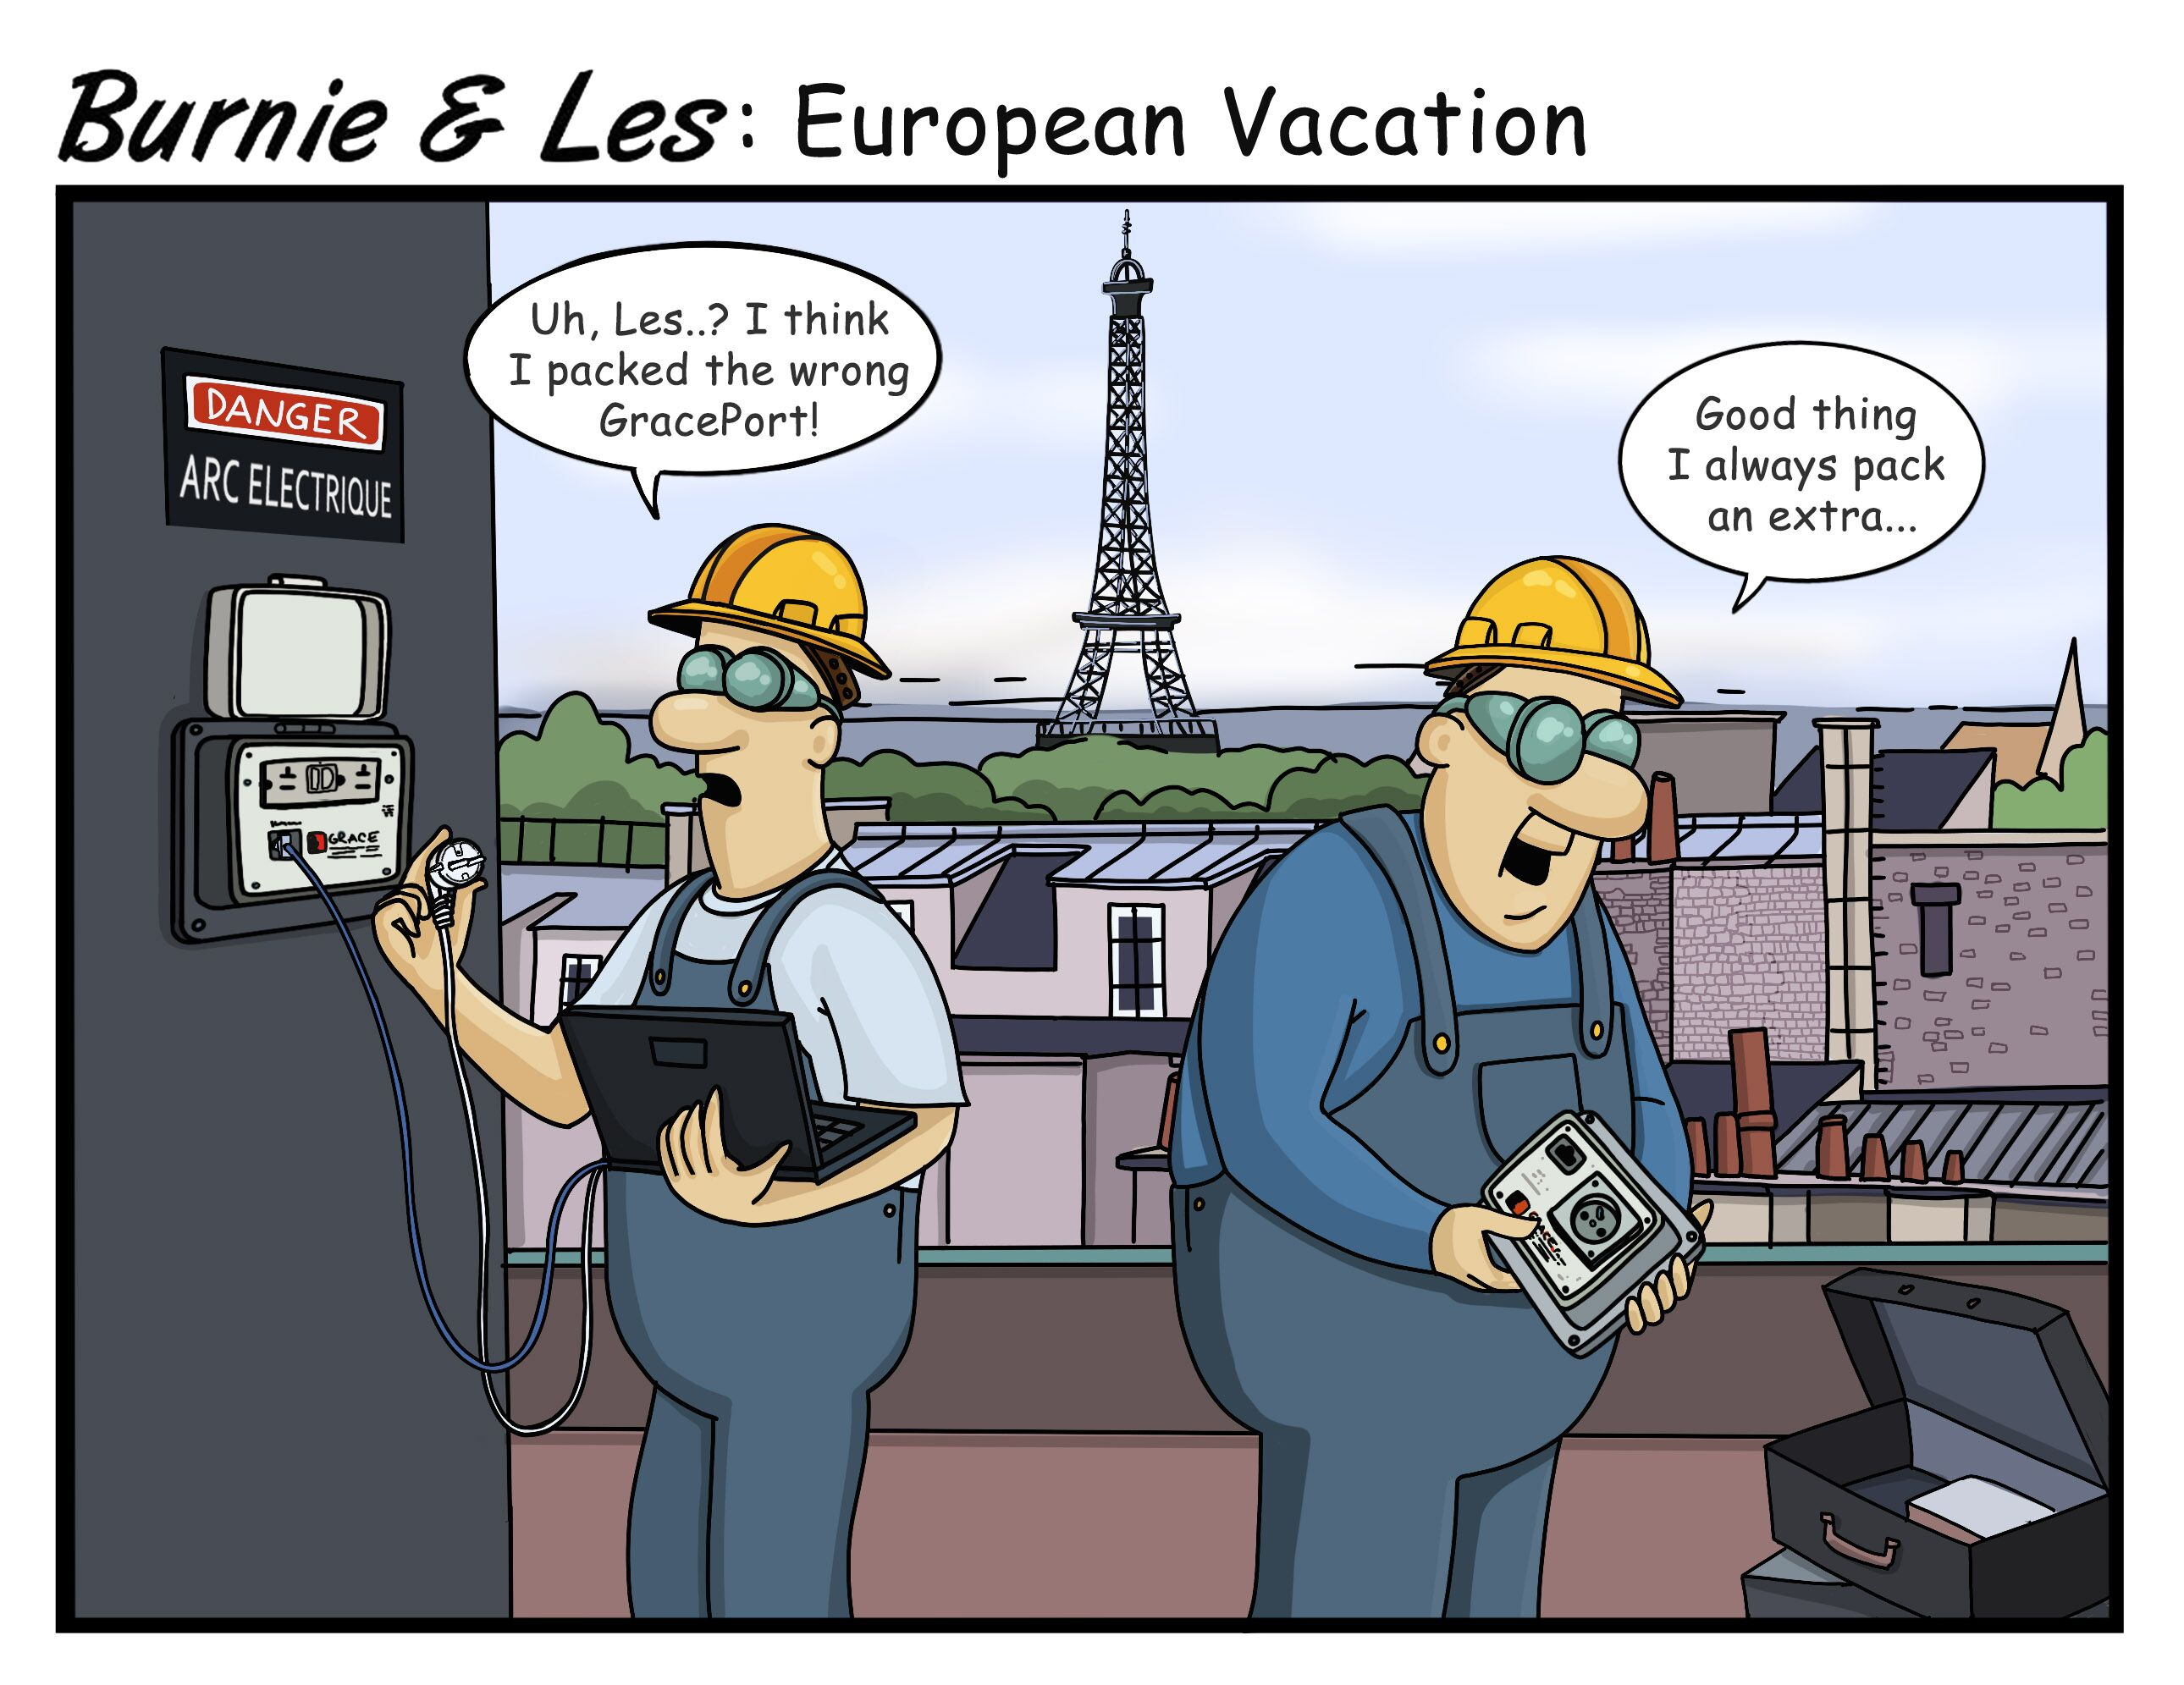 Burnie and Les Europe white